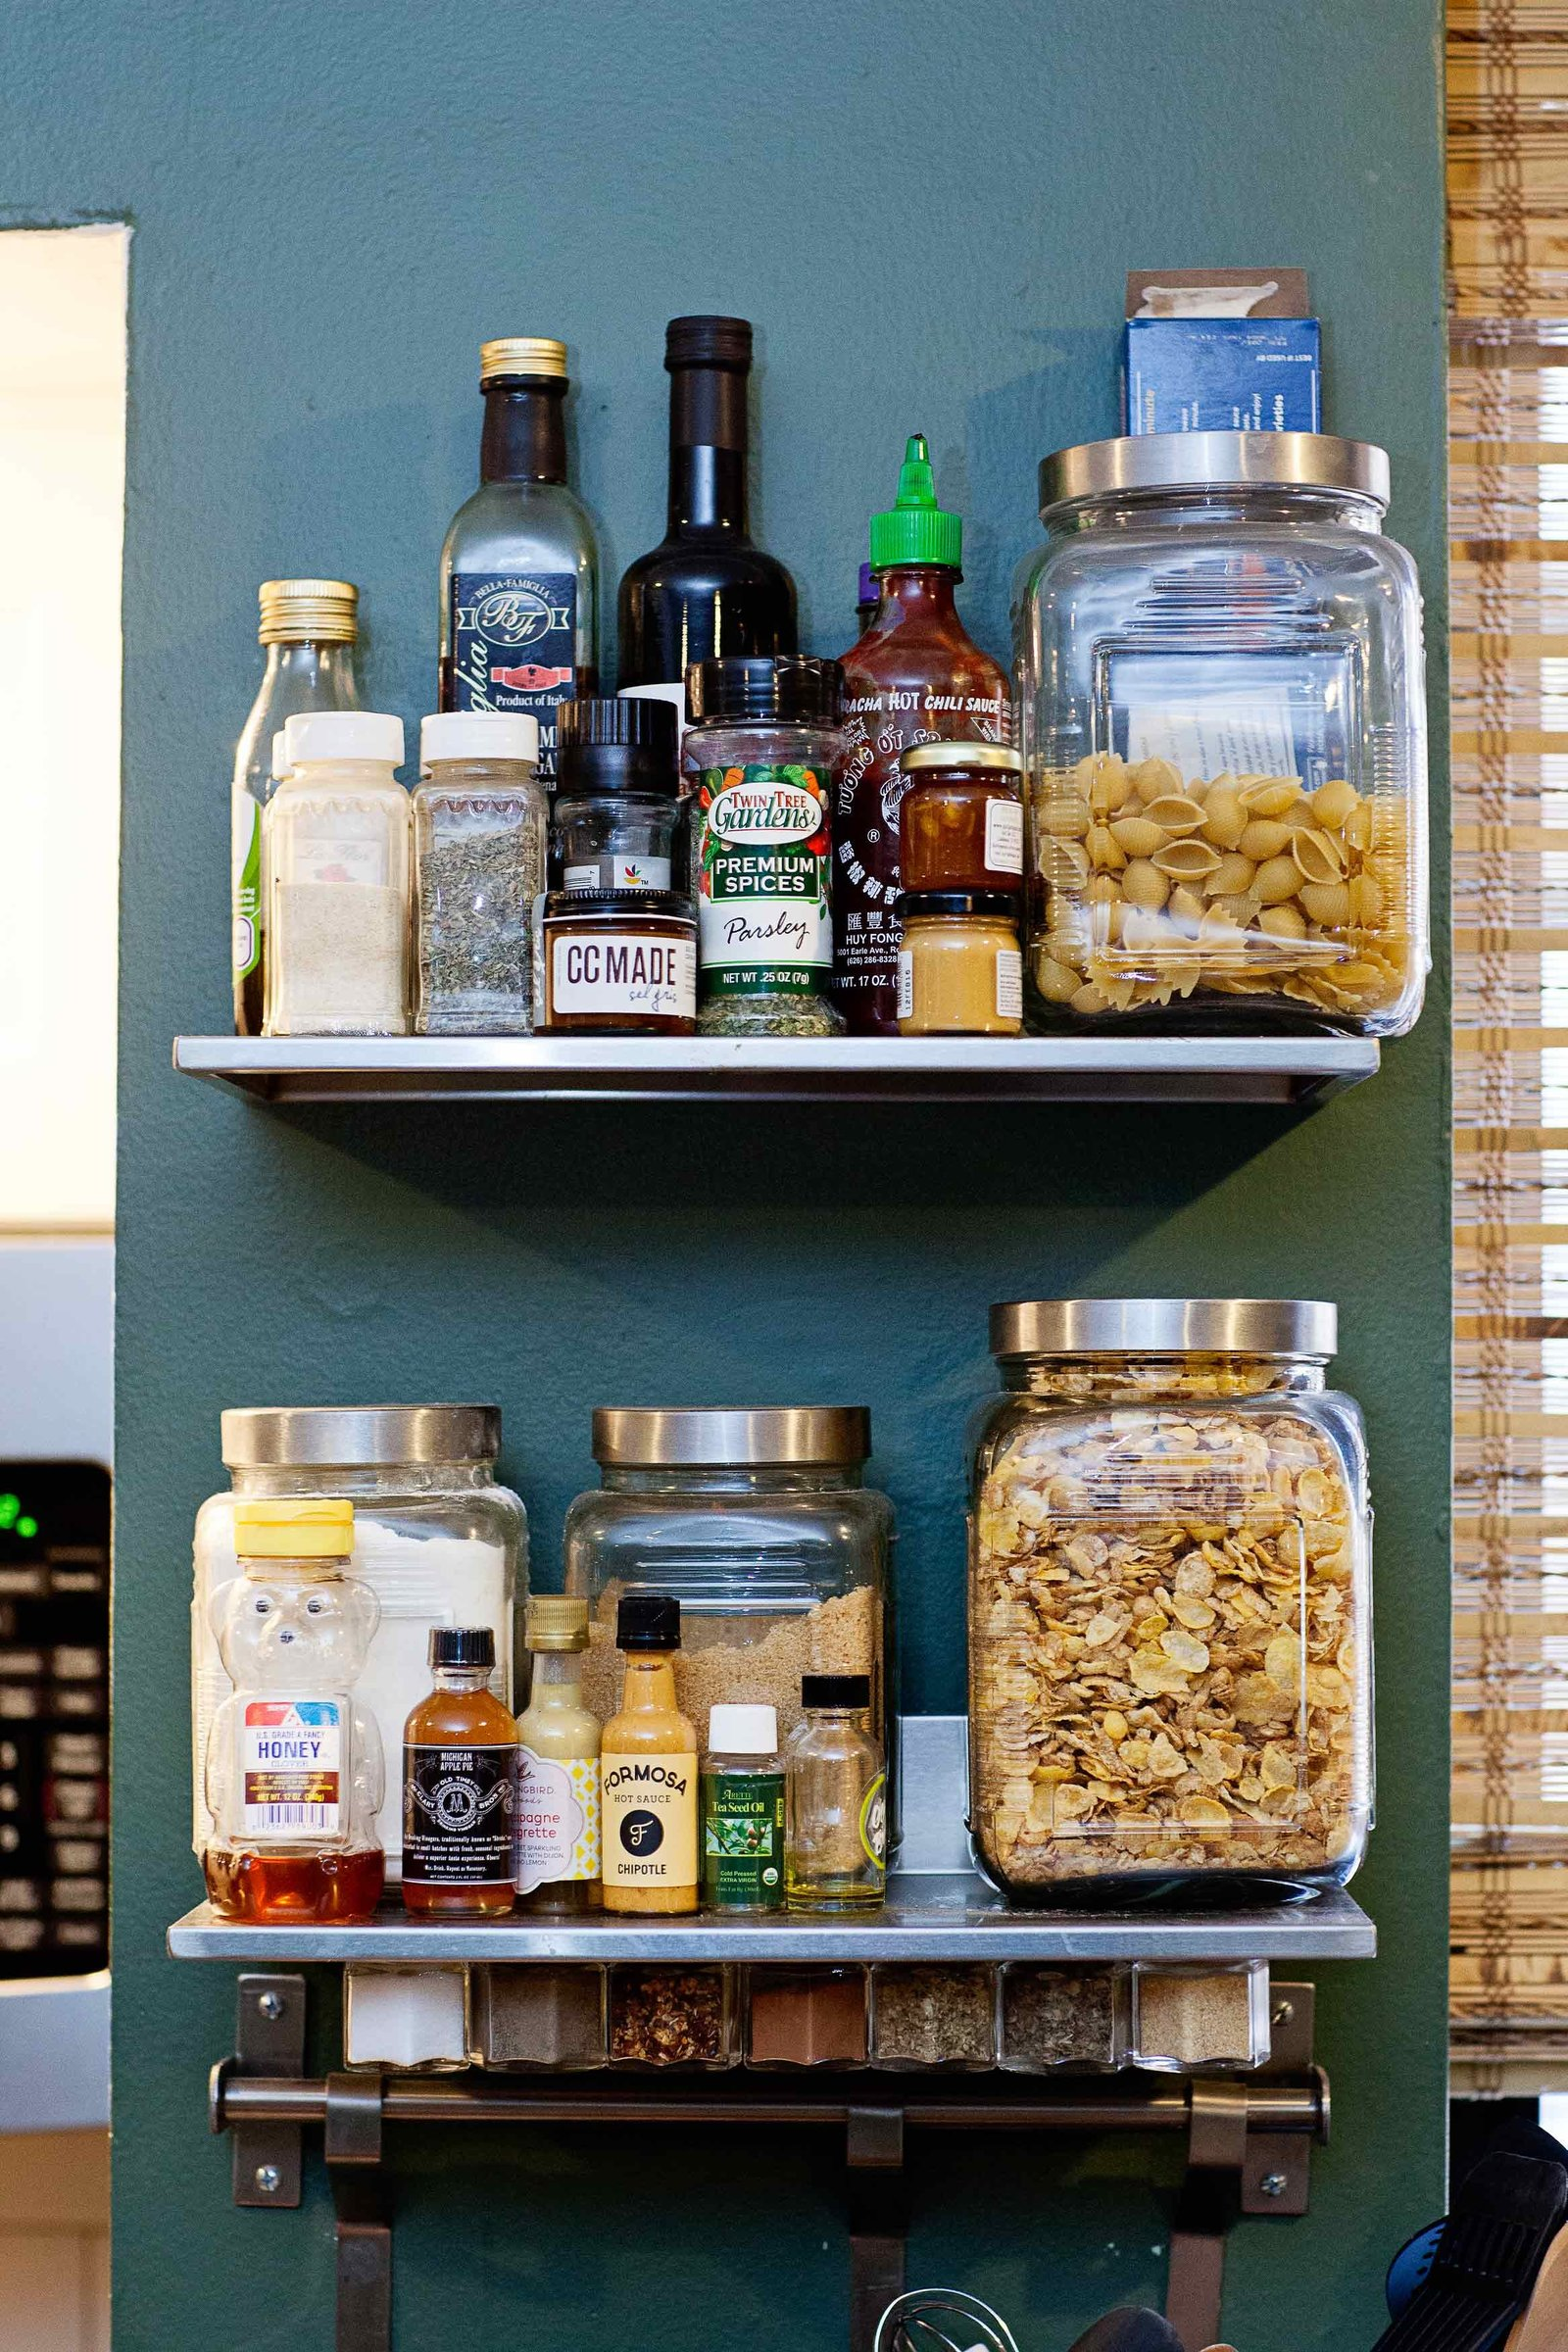 Floating shelves with spices and glass jars with foods.